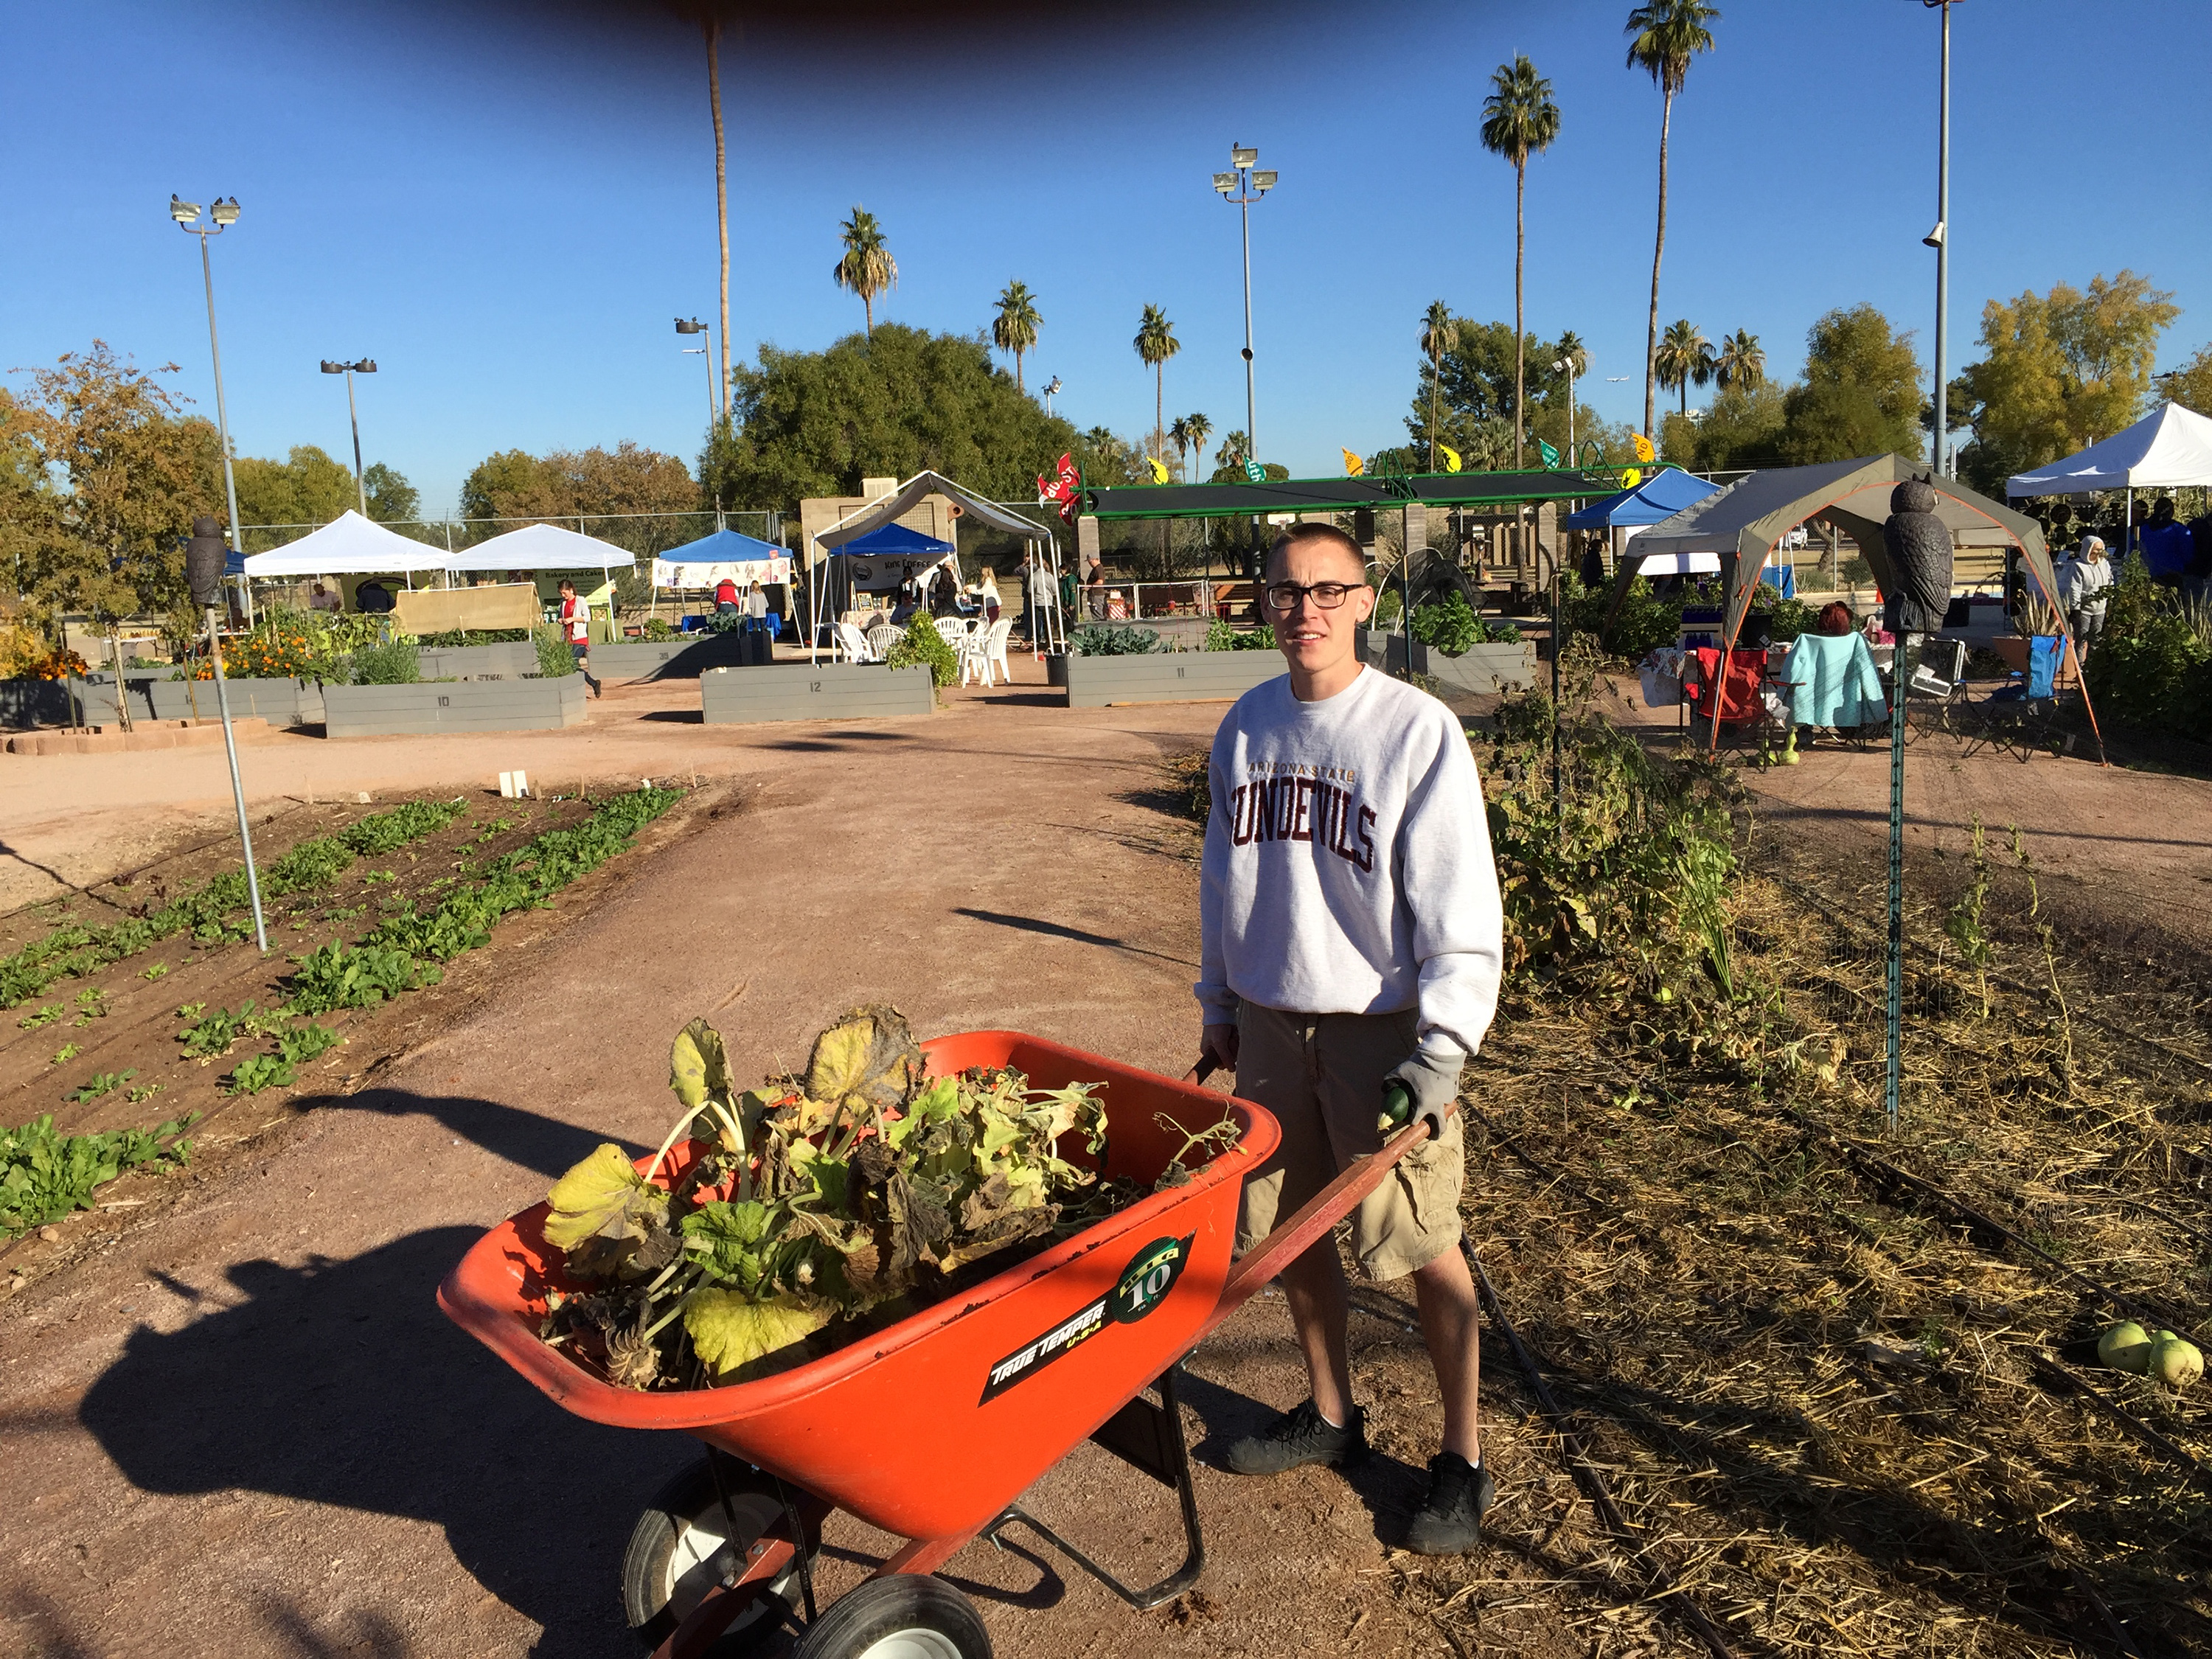 Urban planning graduate focuses on community | ASU Now: Access ...